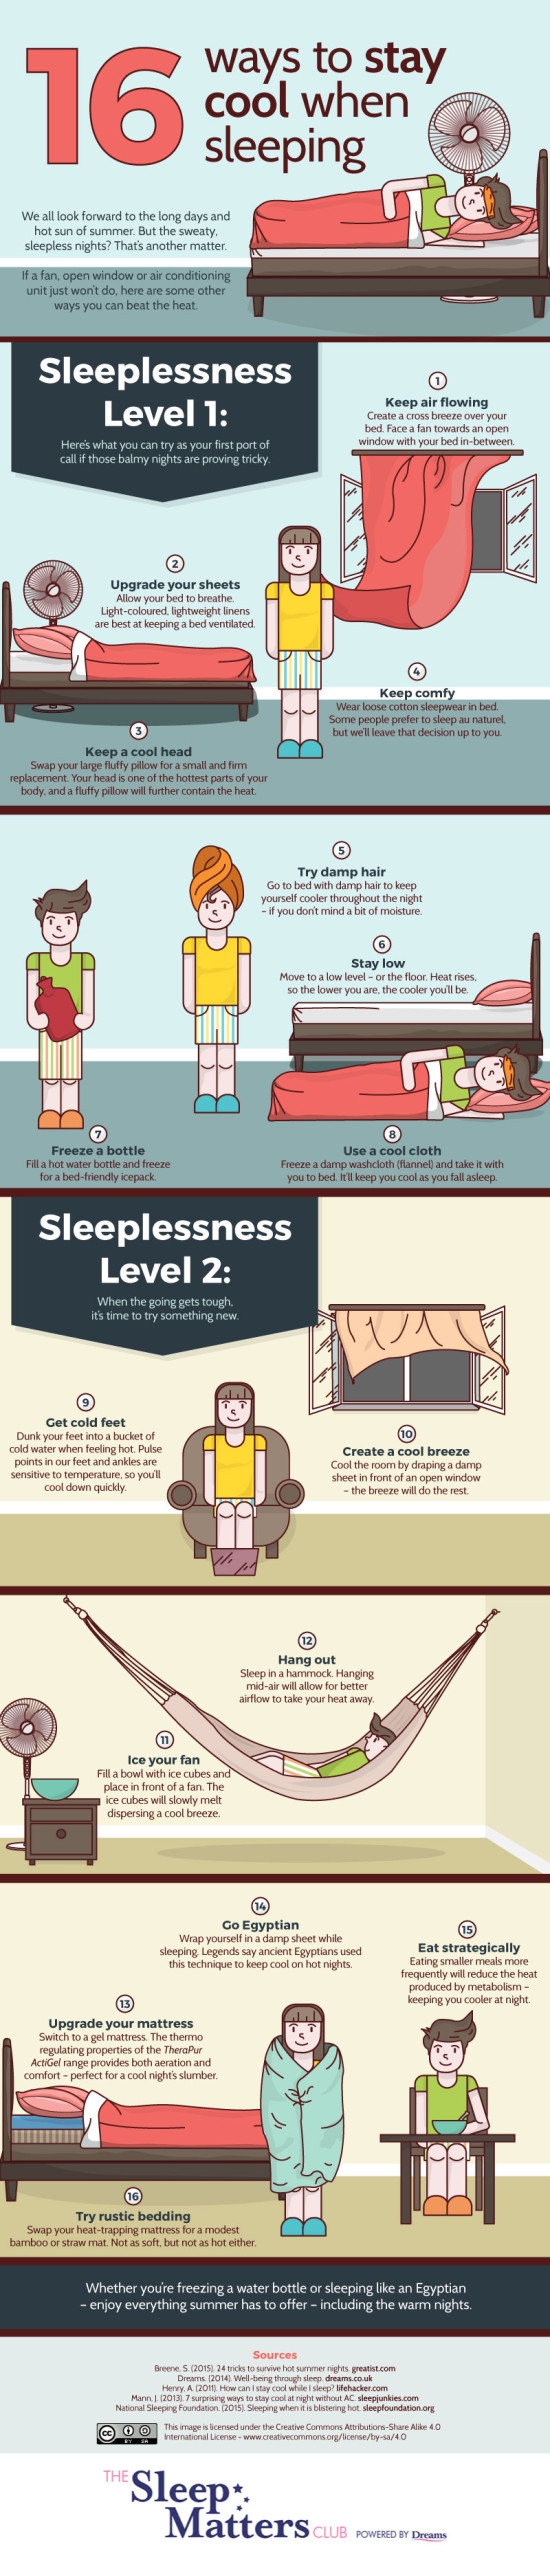 16-ways-to-stay-cool-when-sleeping-infographic